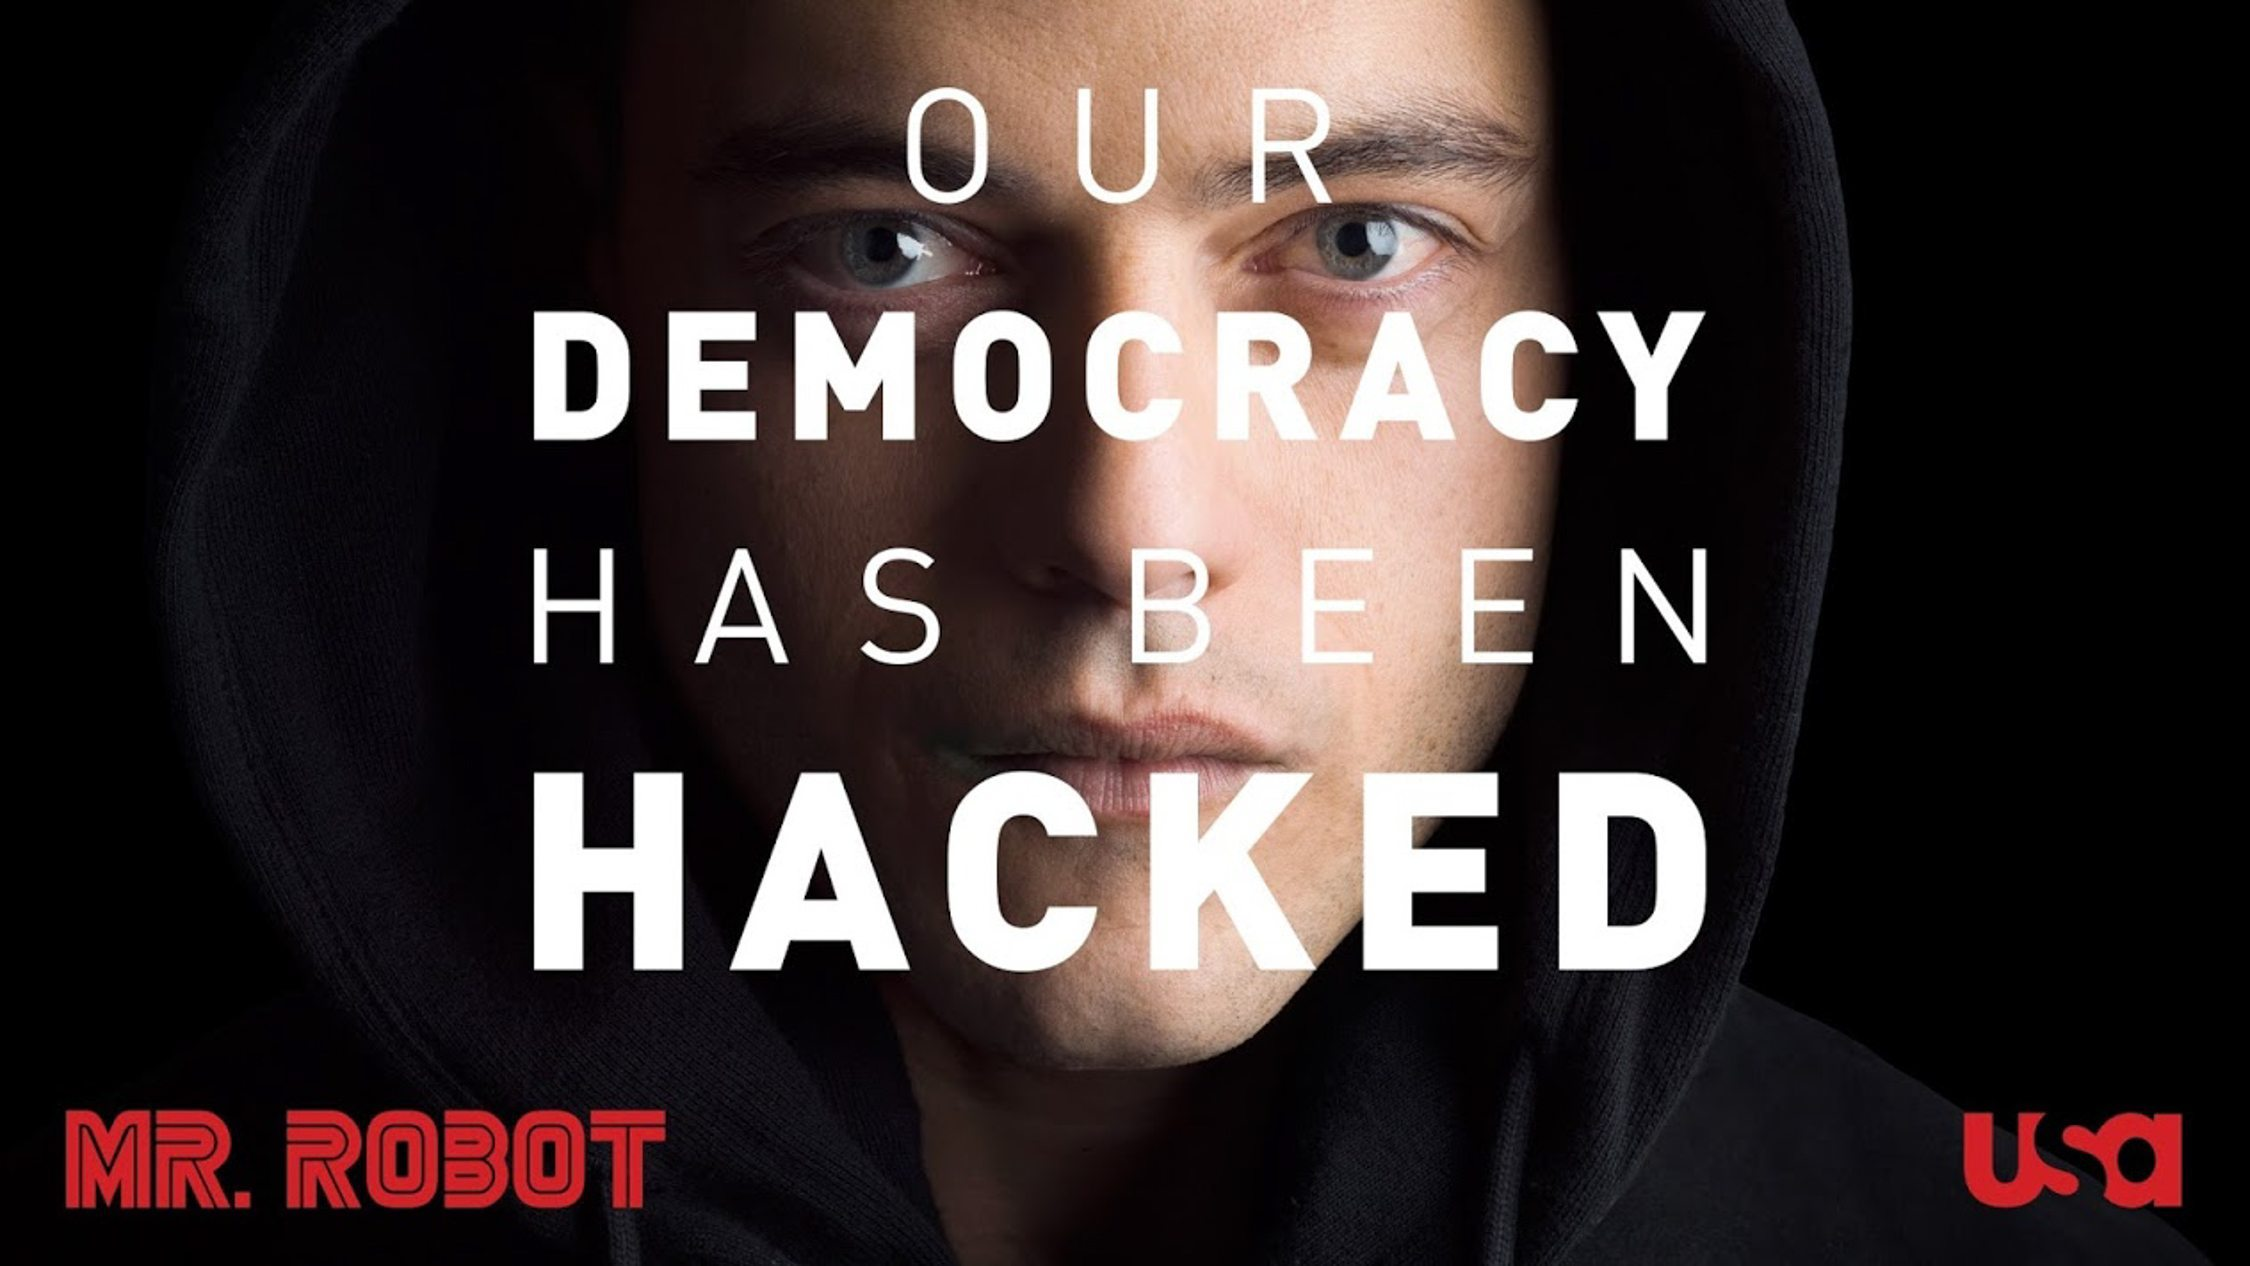 Mr. Robot (1264 x 711) VoicesFILM.com